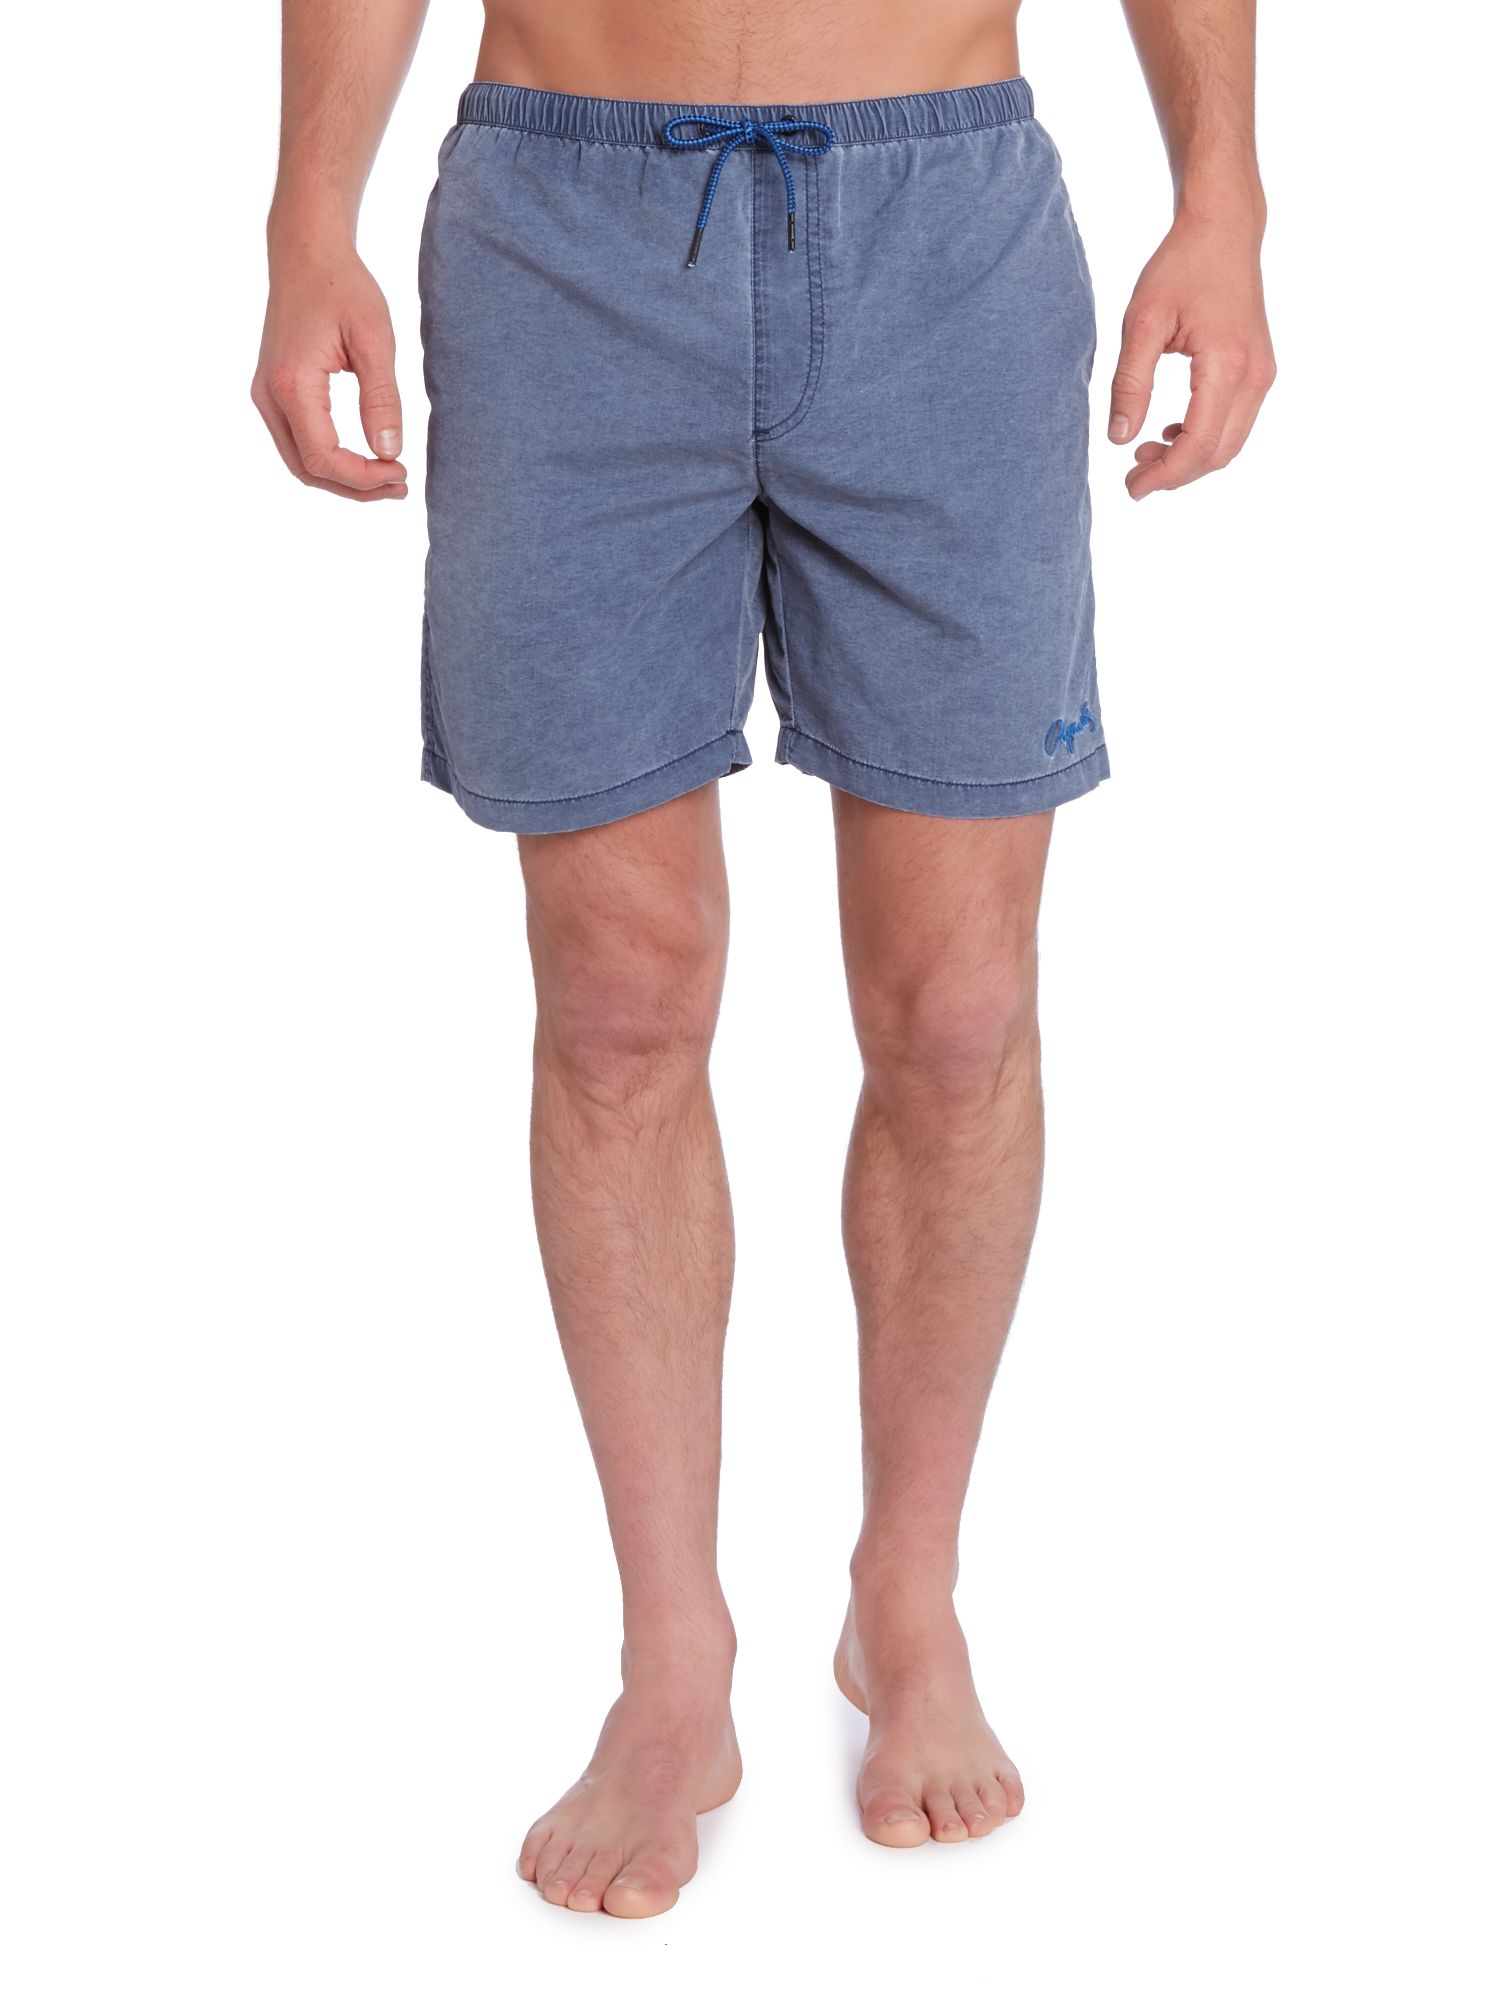 Originals swim shorts